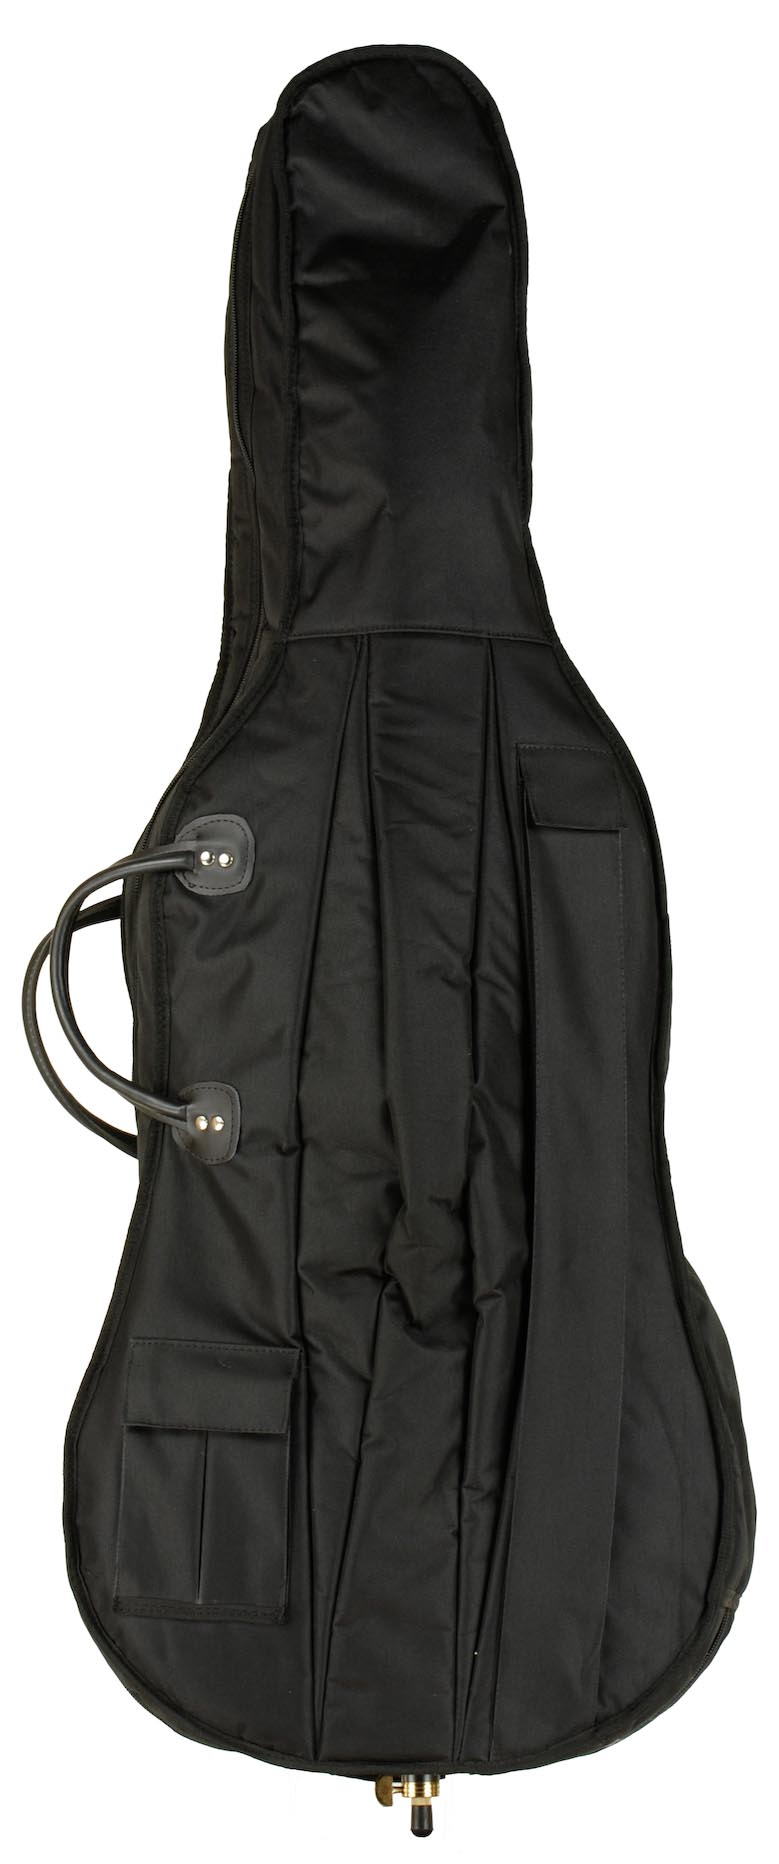 Laminate Cello Rental Bag